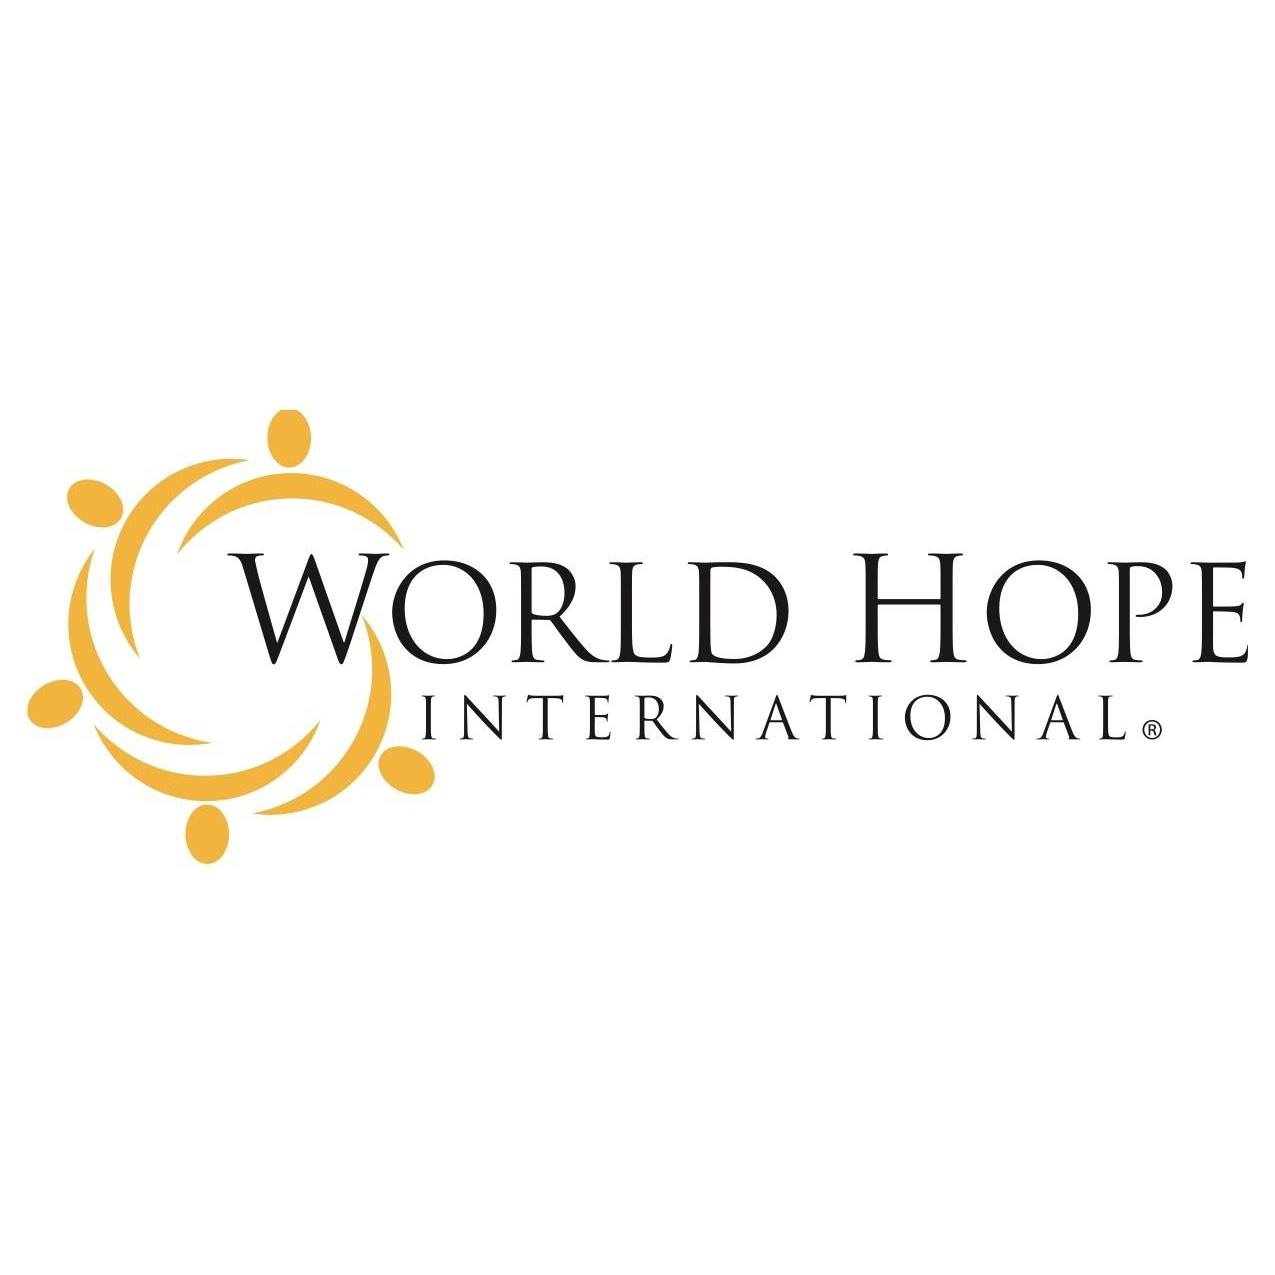 World Hope International - A Christian relief and development organization working with vulnerable and exploited communities to alleviate poverty, suffering, and injustice in 15 of the poorest countries in the world.